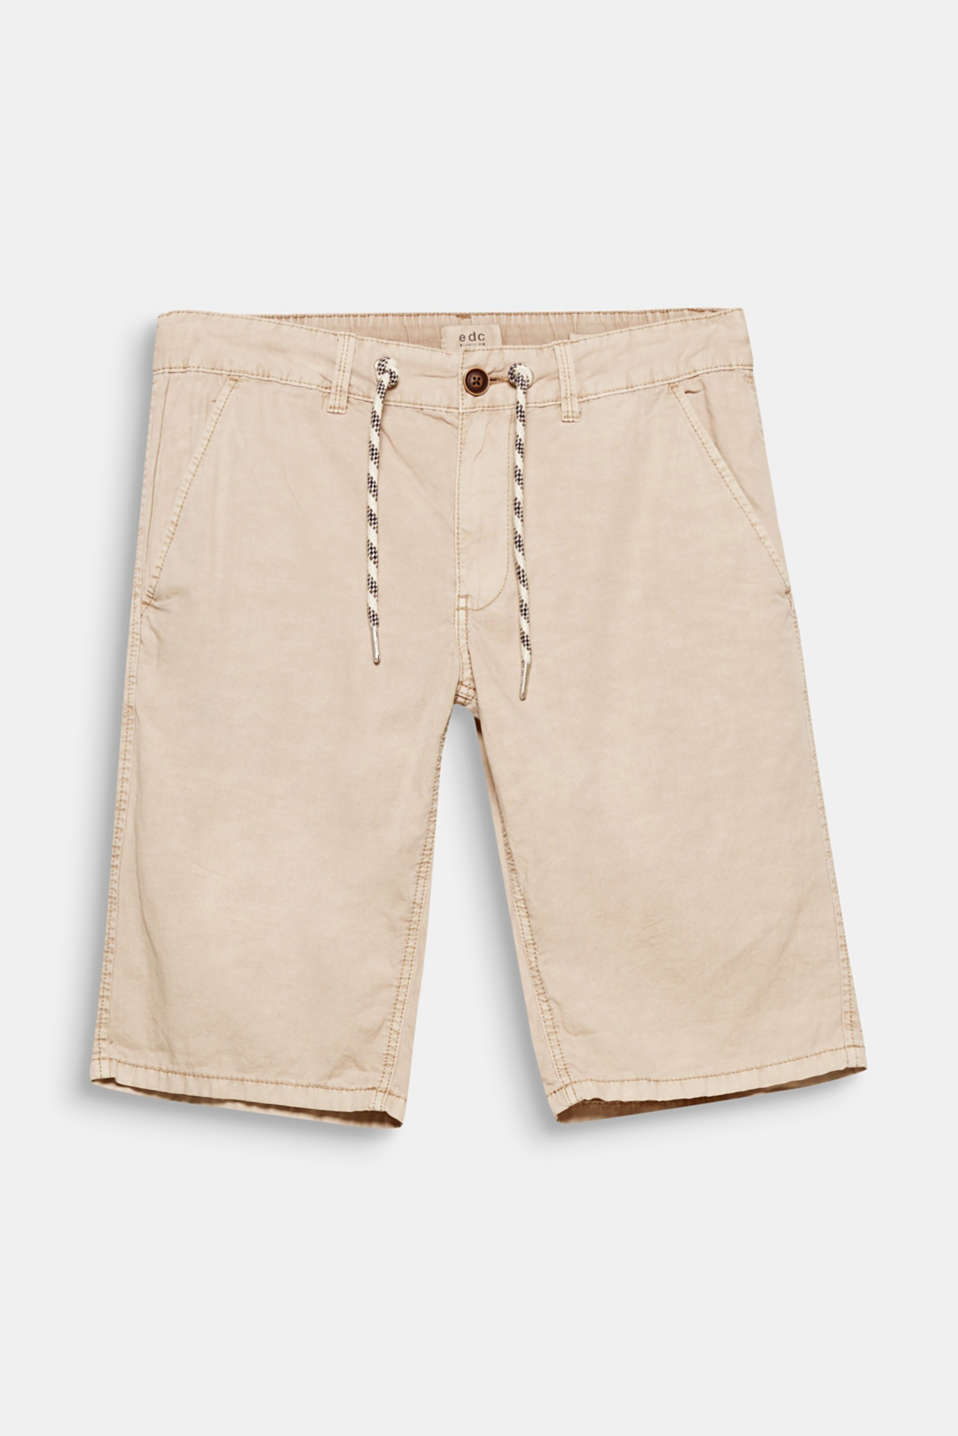 These shorts in a summery, lightweight look impress with their cotton-linen blend.